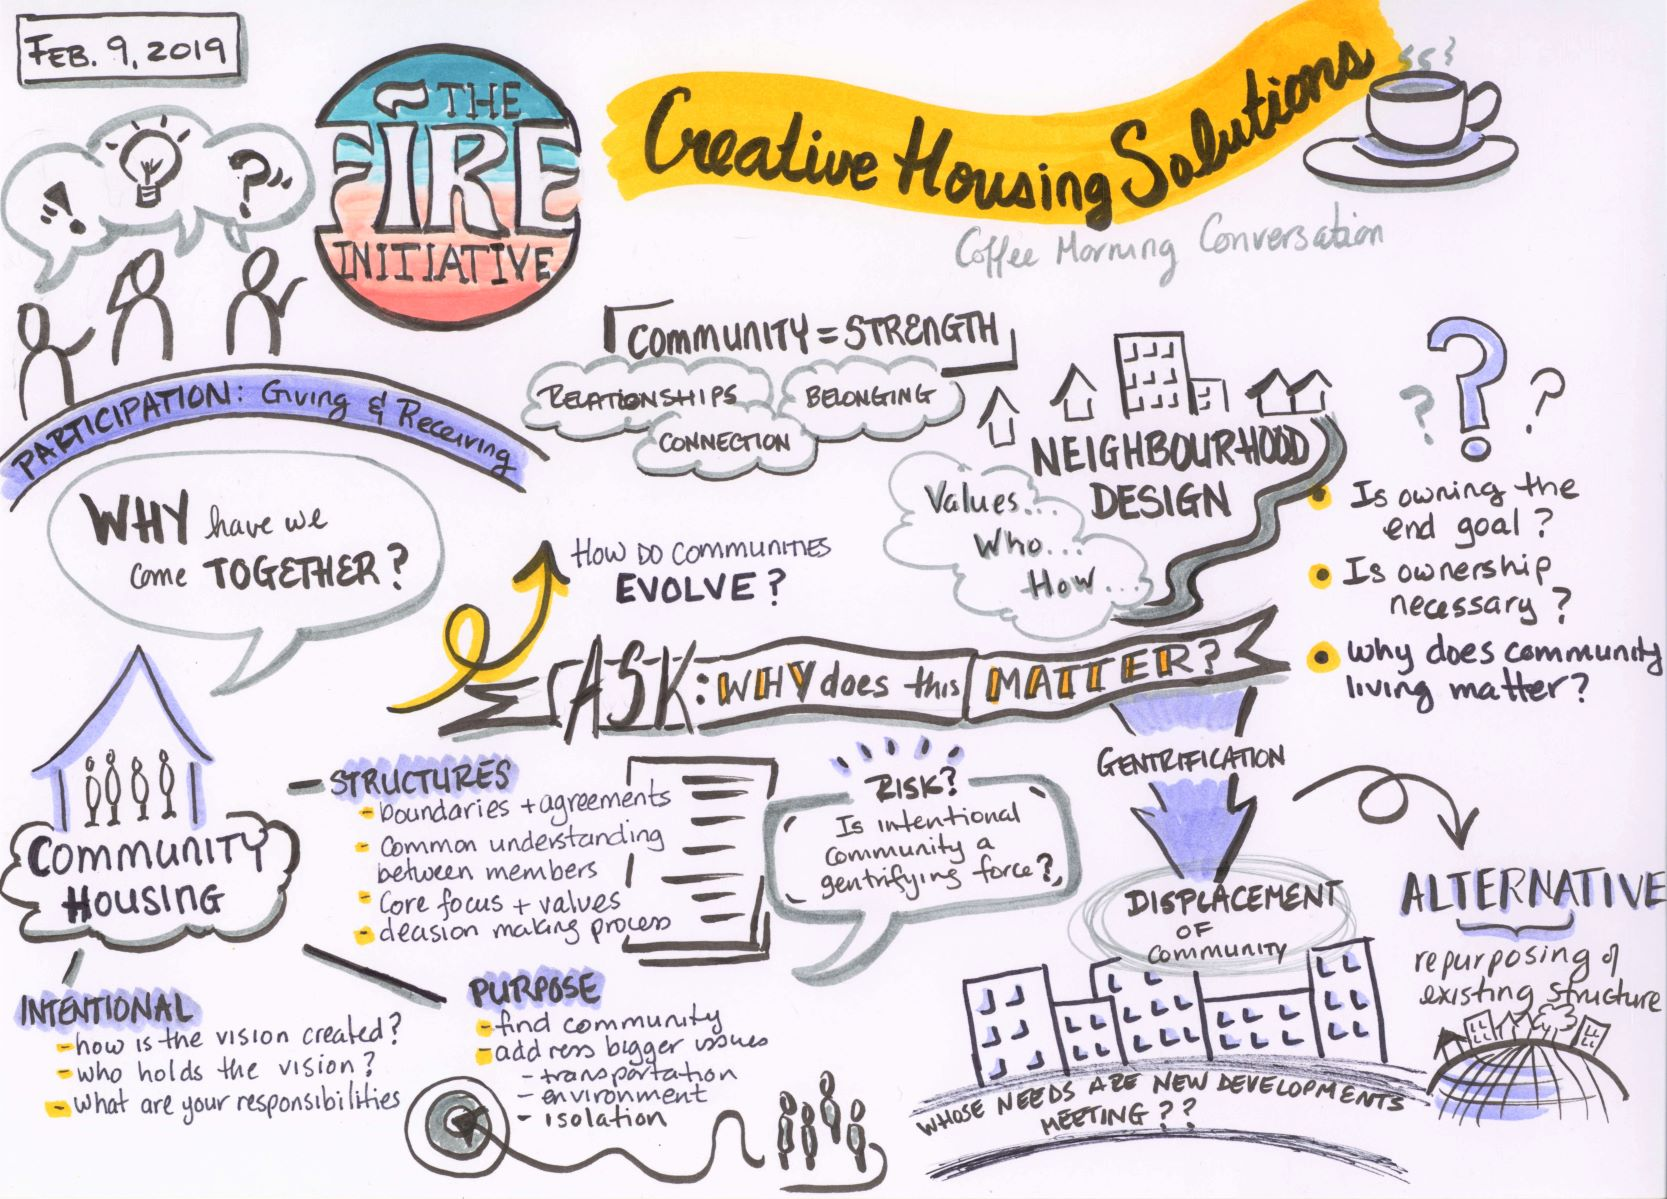 Sketchnote - Comunity Conversation - FIRE initiative